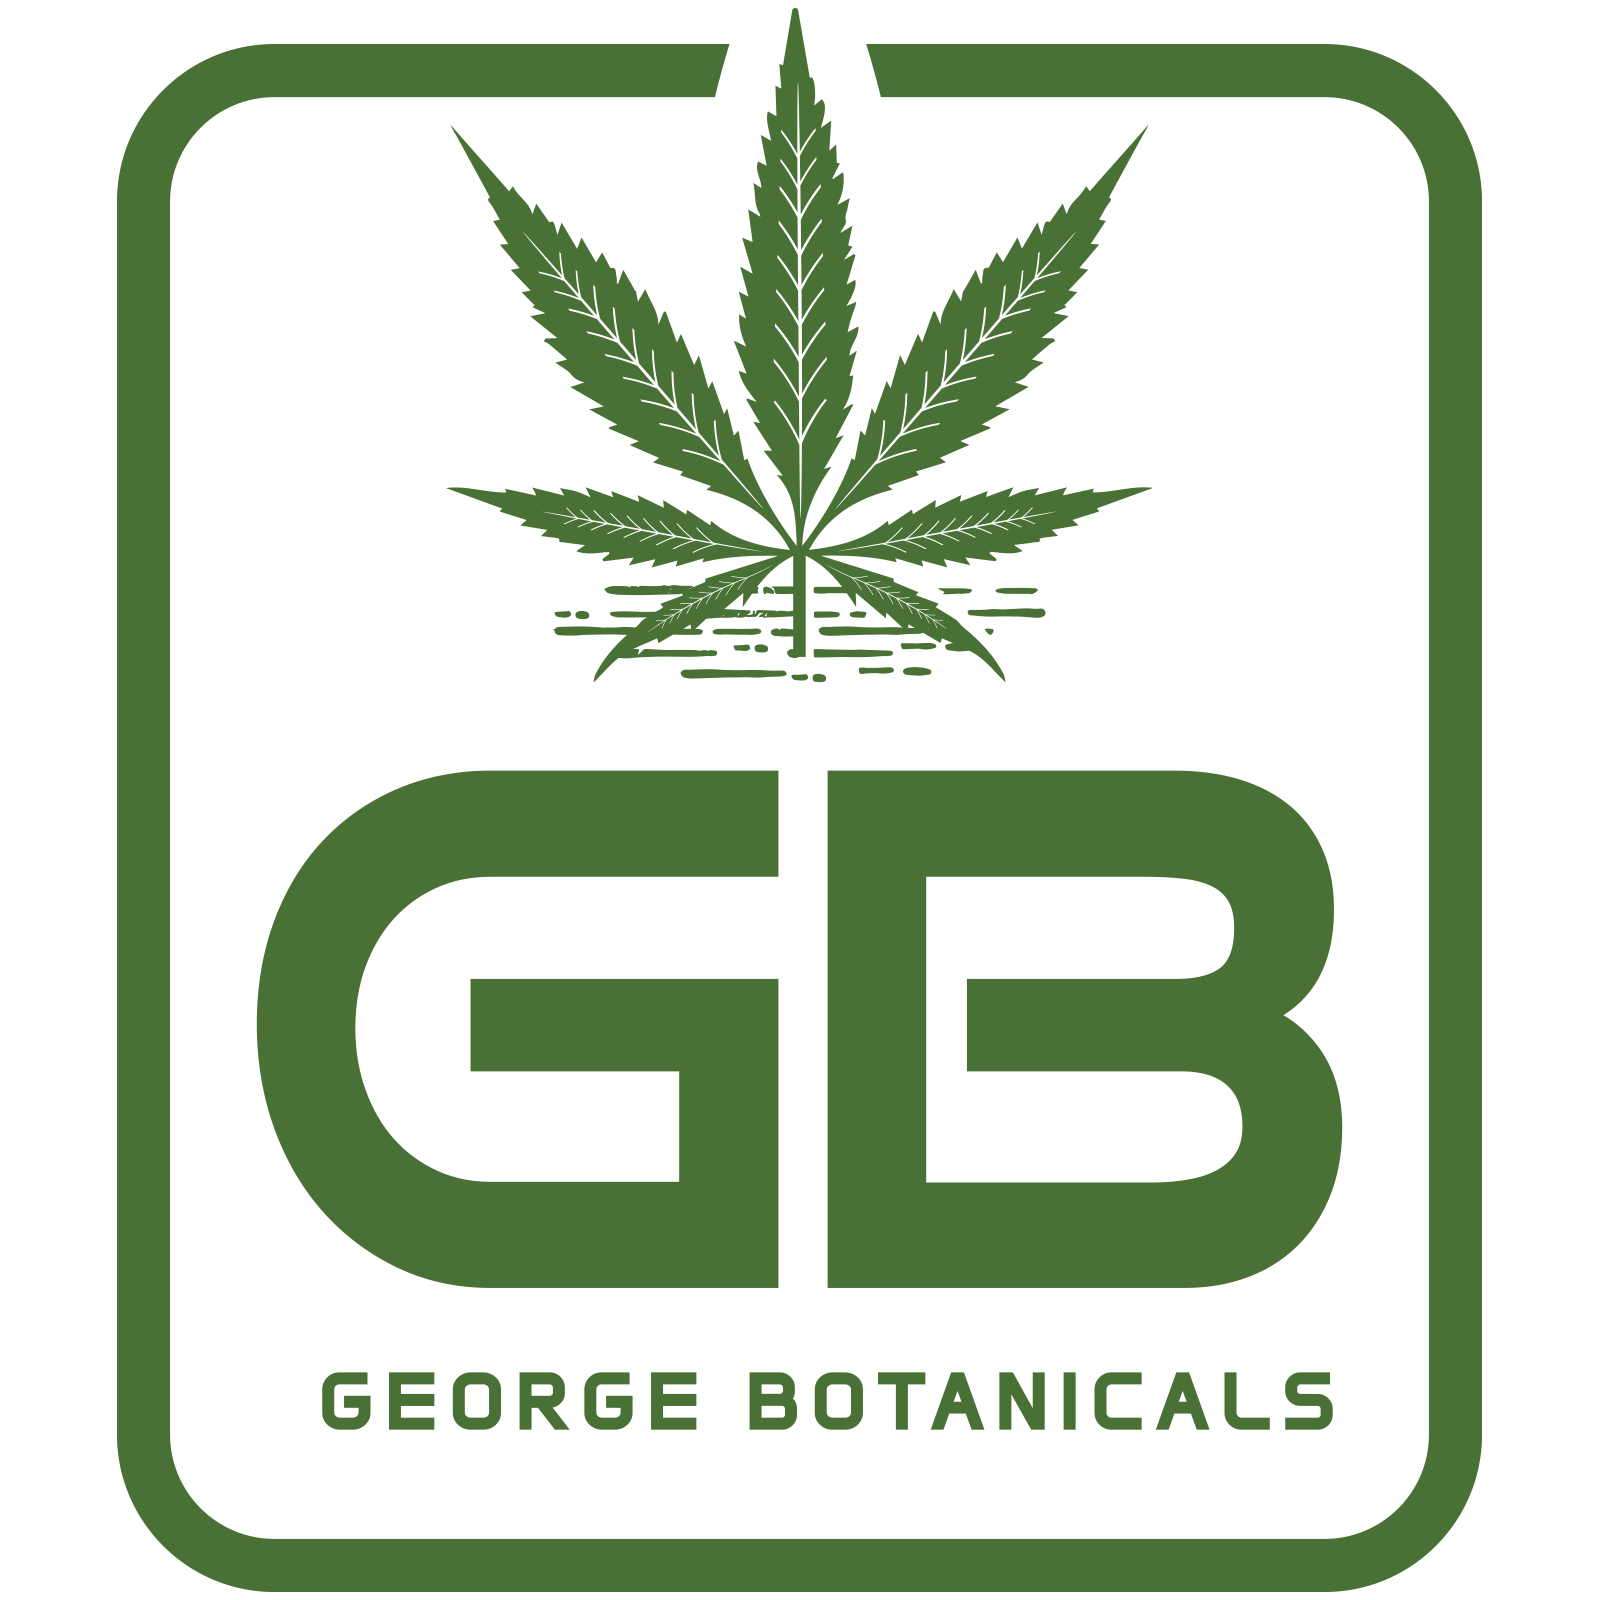 George Botanicals